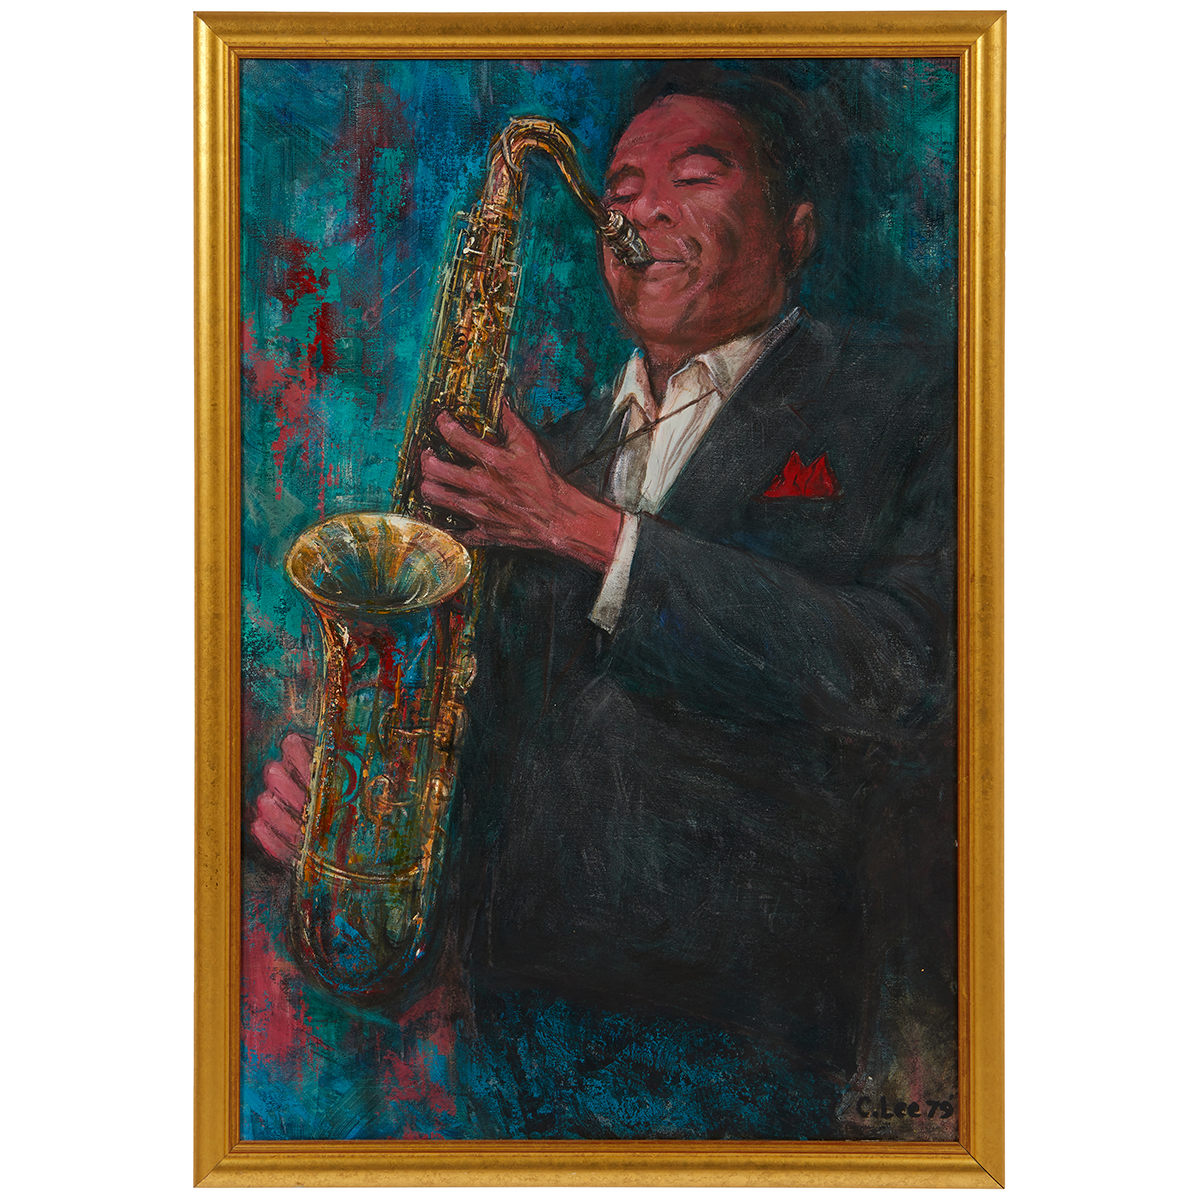 """Clifford Lee, (American, 1926-1985), Untitled (Saxophone Player), 1979, oil on canvas, 36"""" x 24"""""""